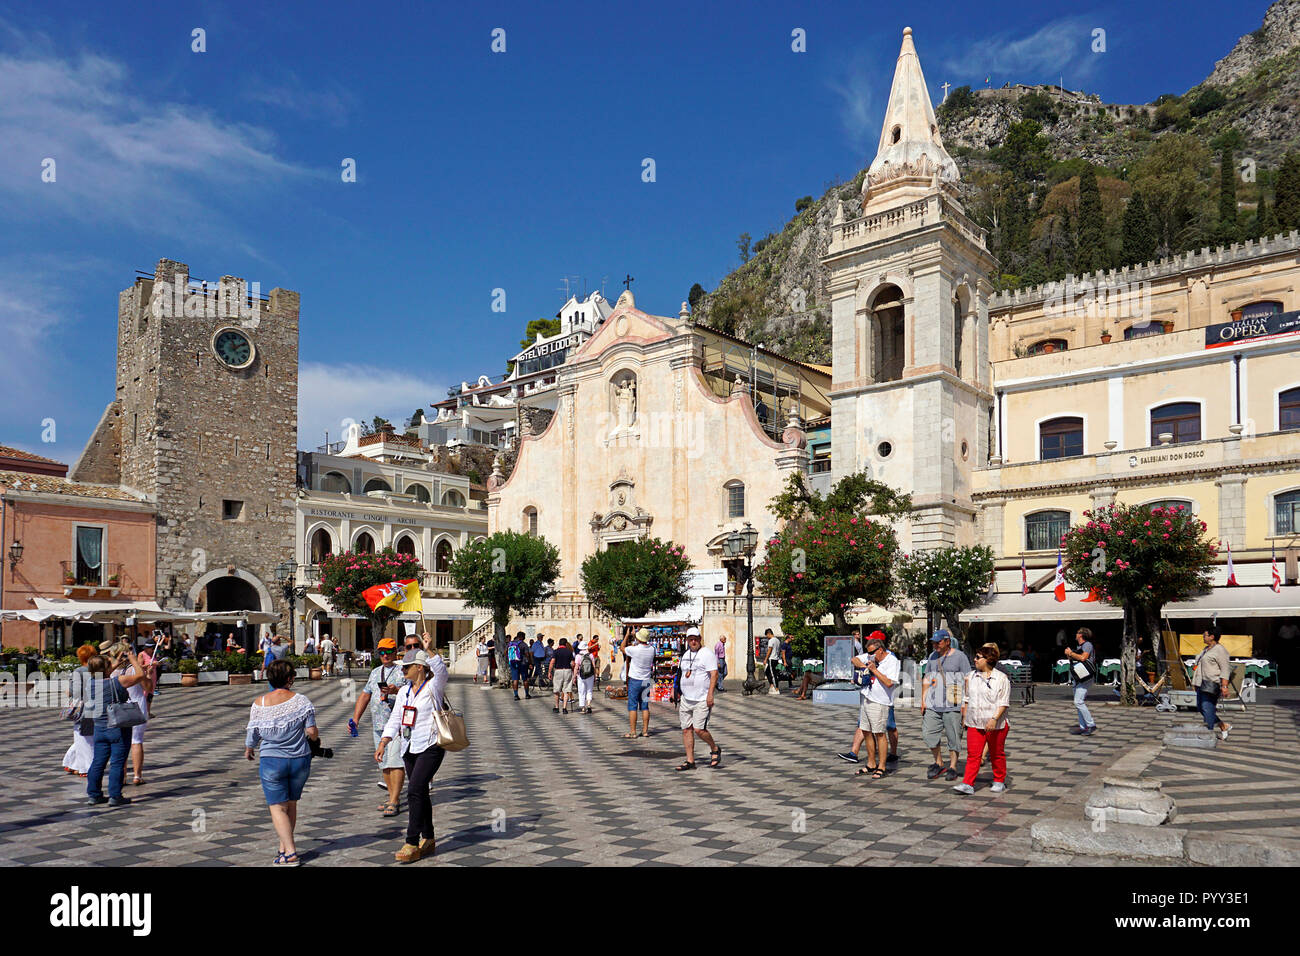 The church of San Giuseppe and the clock tower Torre dell'Orolorgio in Piazza IX. Aprile, old town of Taormina, Sicily, Italy - Stock Image